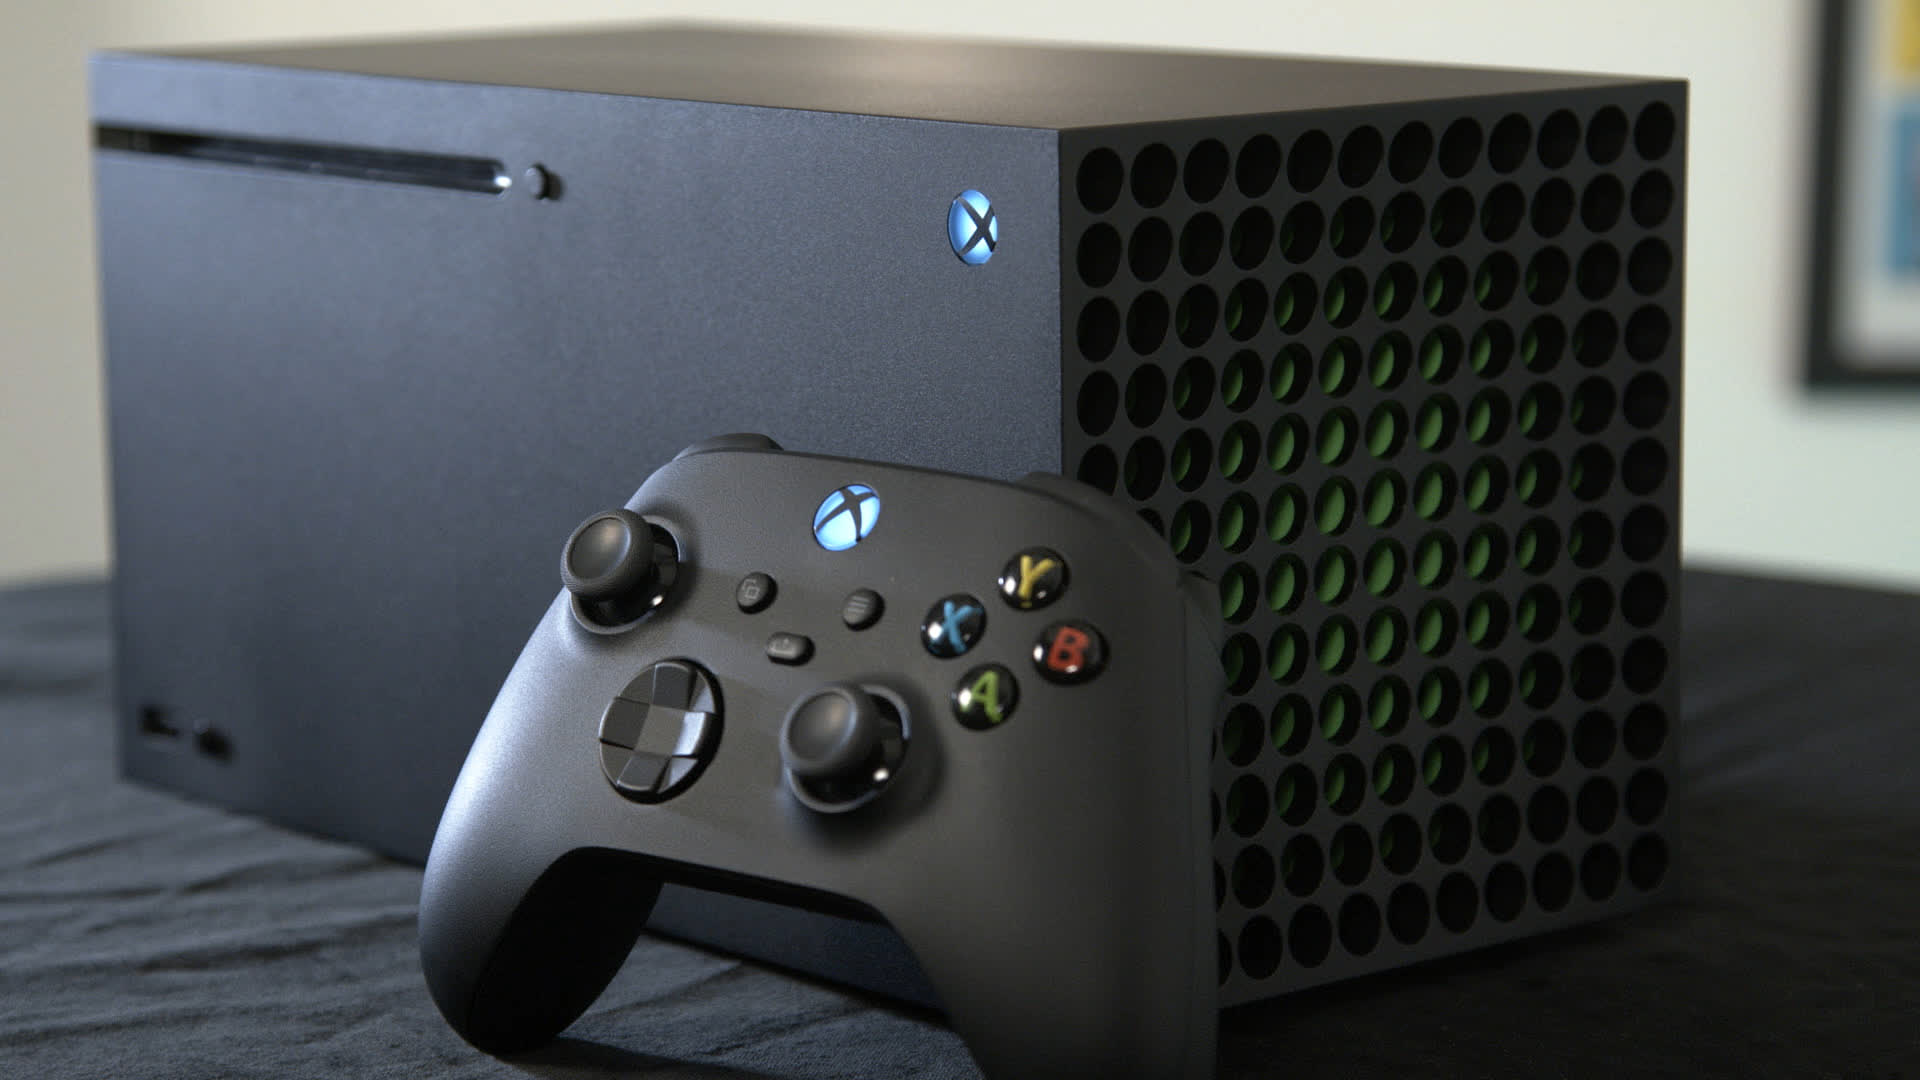 Microsoft and AMD are bringing FidelityFX Super Resolution to Xbox Series X and Series S